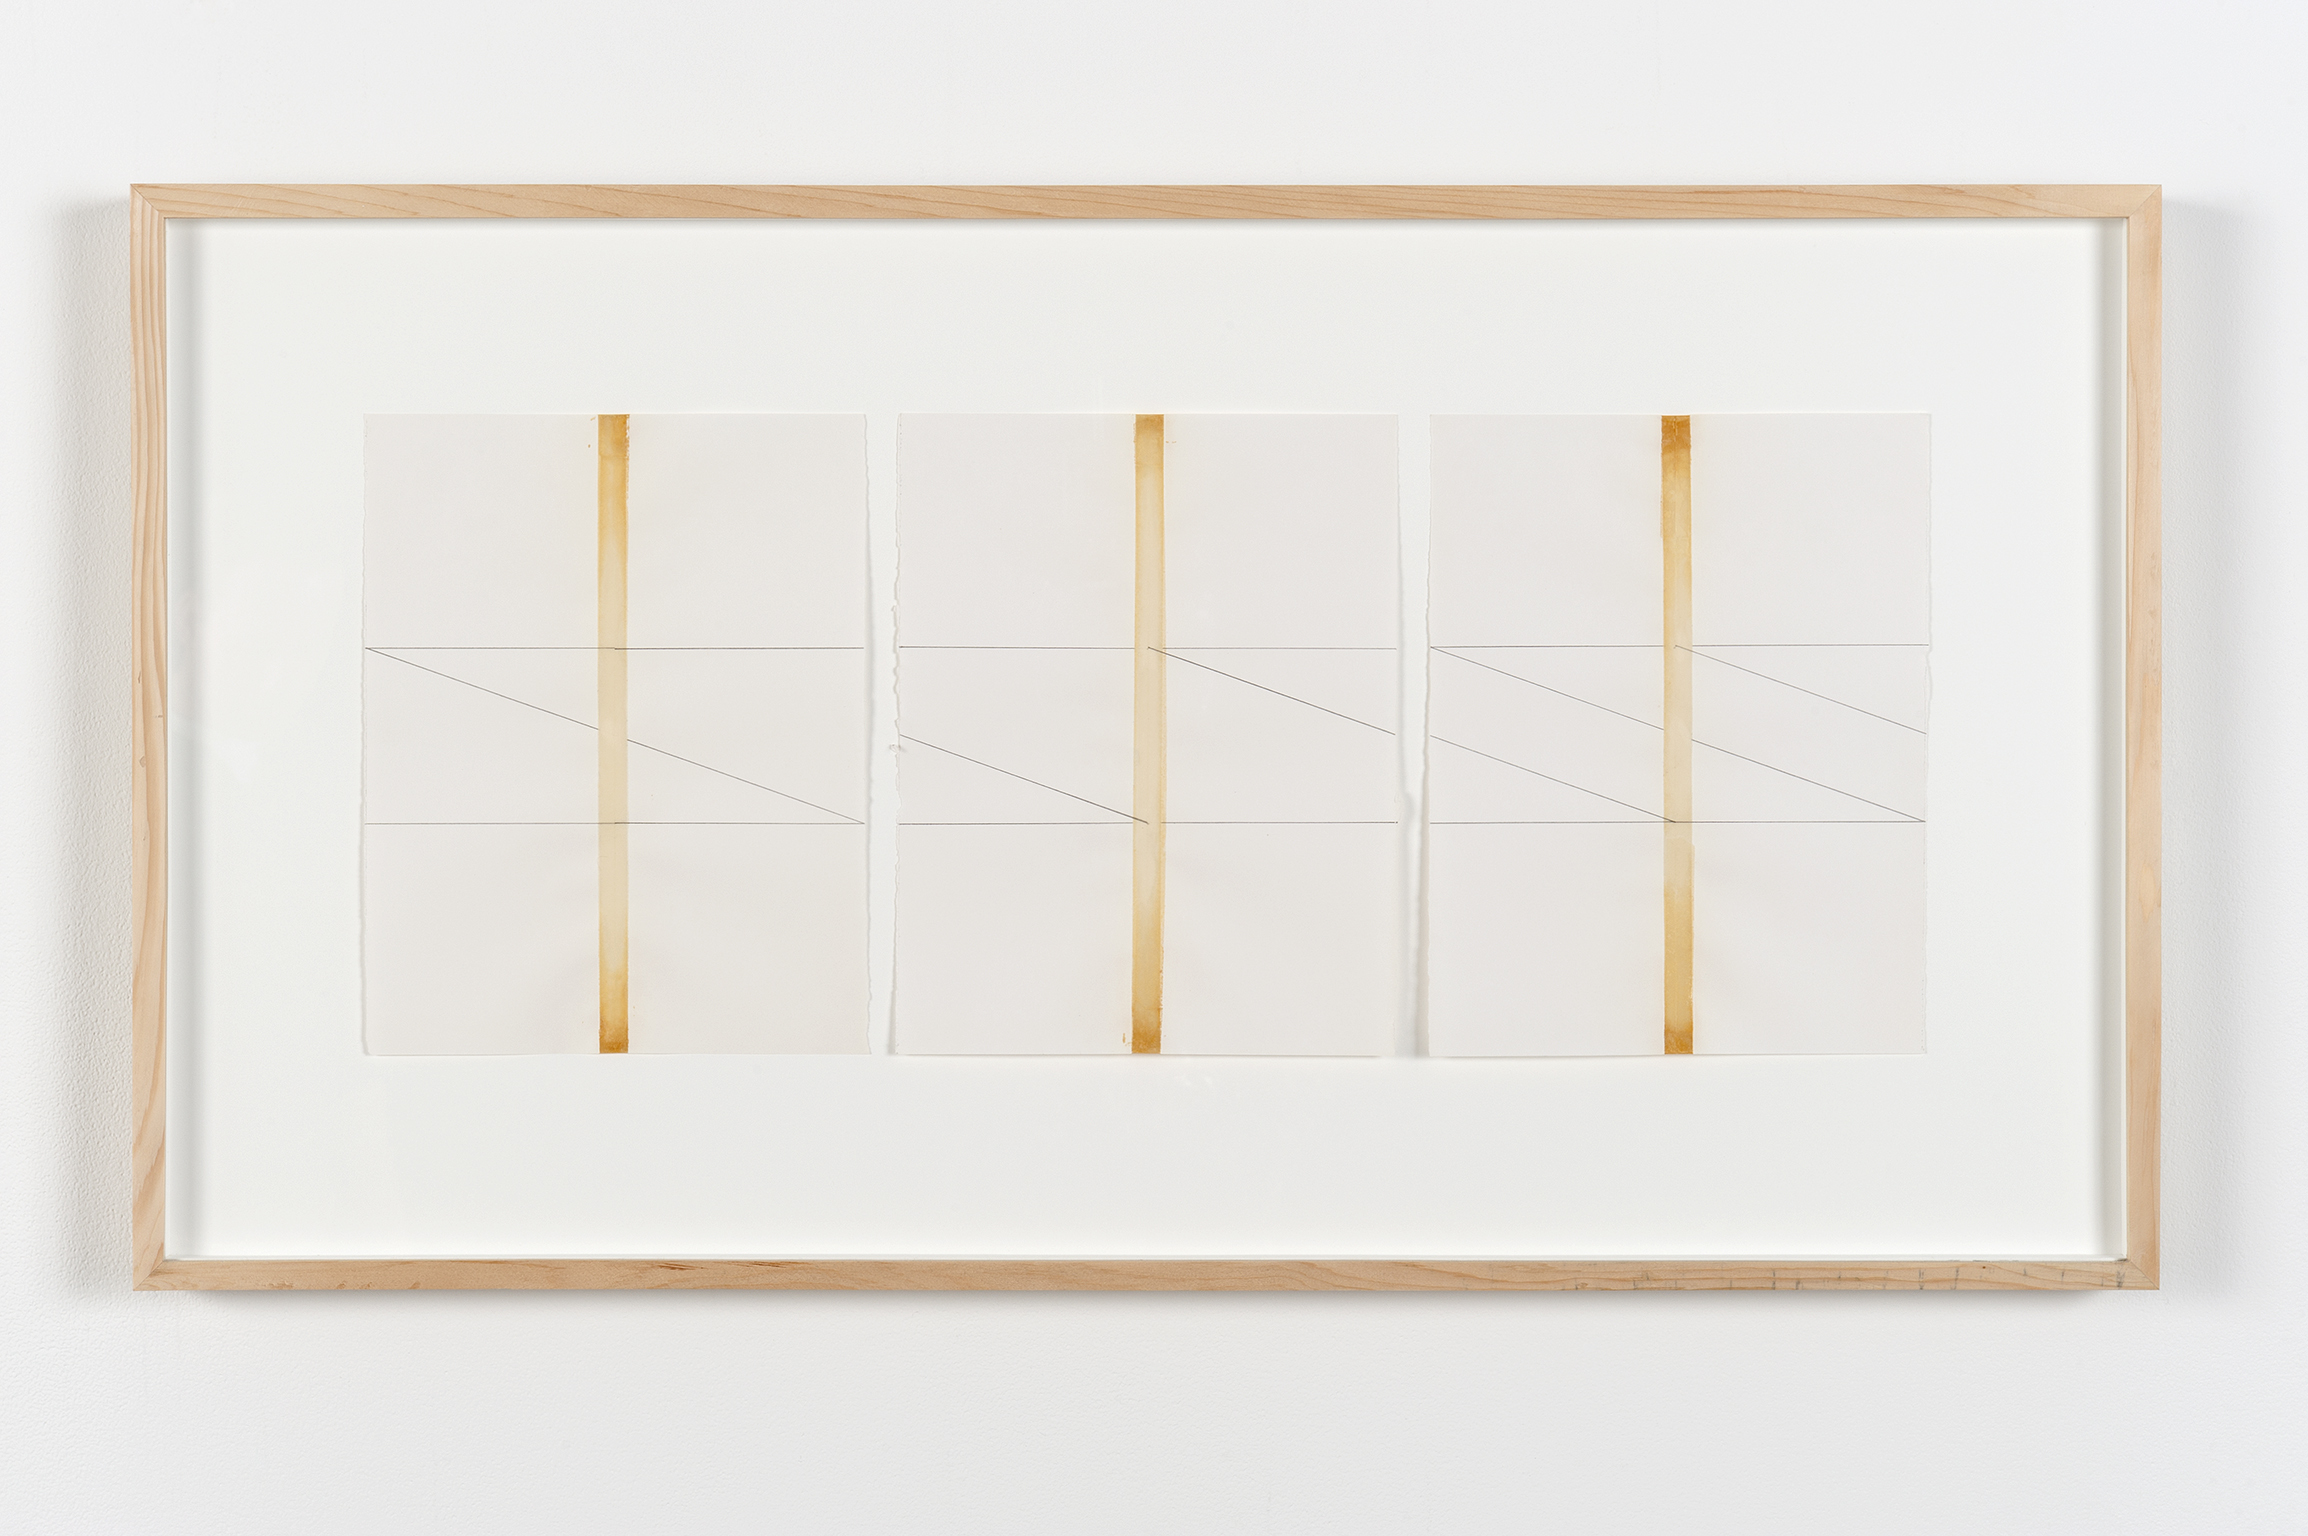 Robert Kleyn, Taped Drawings, 1970, transparent tape and pencil on paper, 19 x 35 in. (48 x 88 cm) by